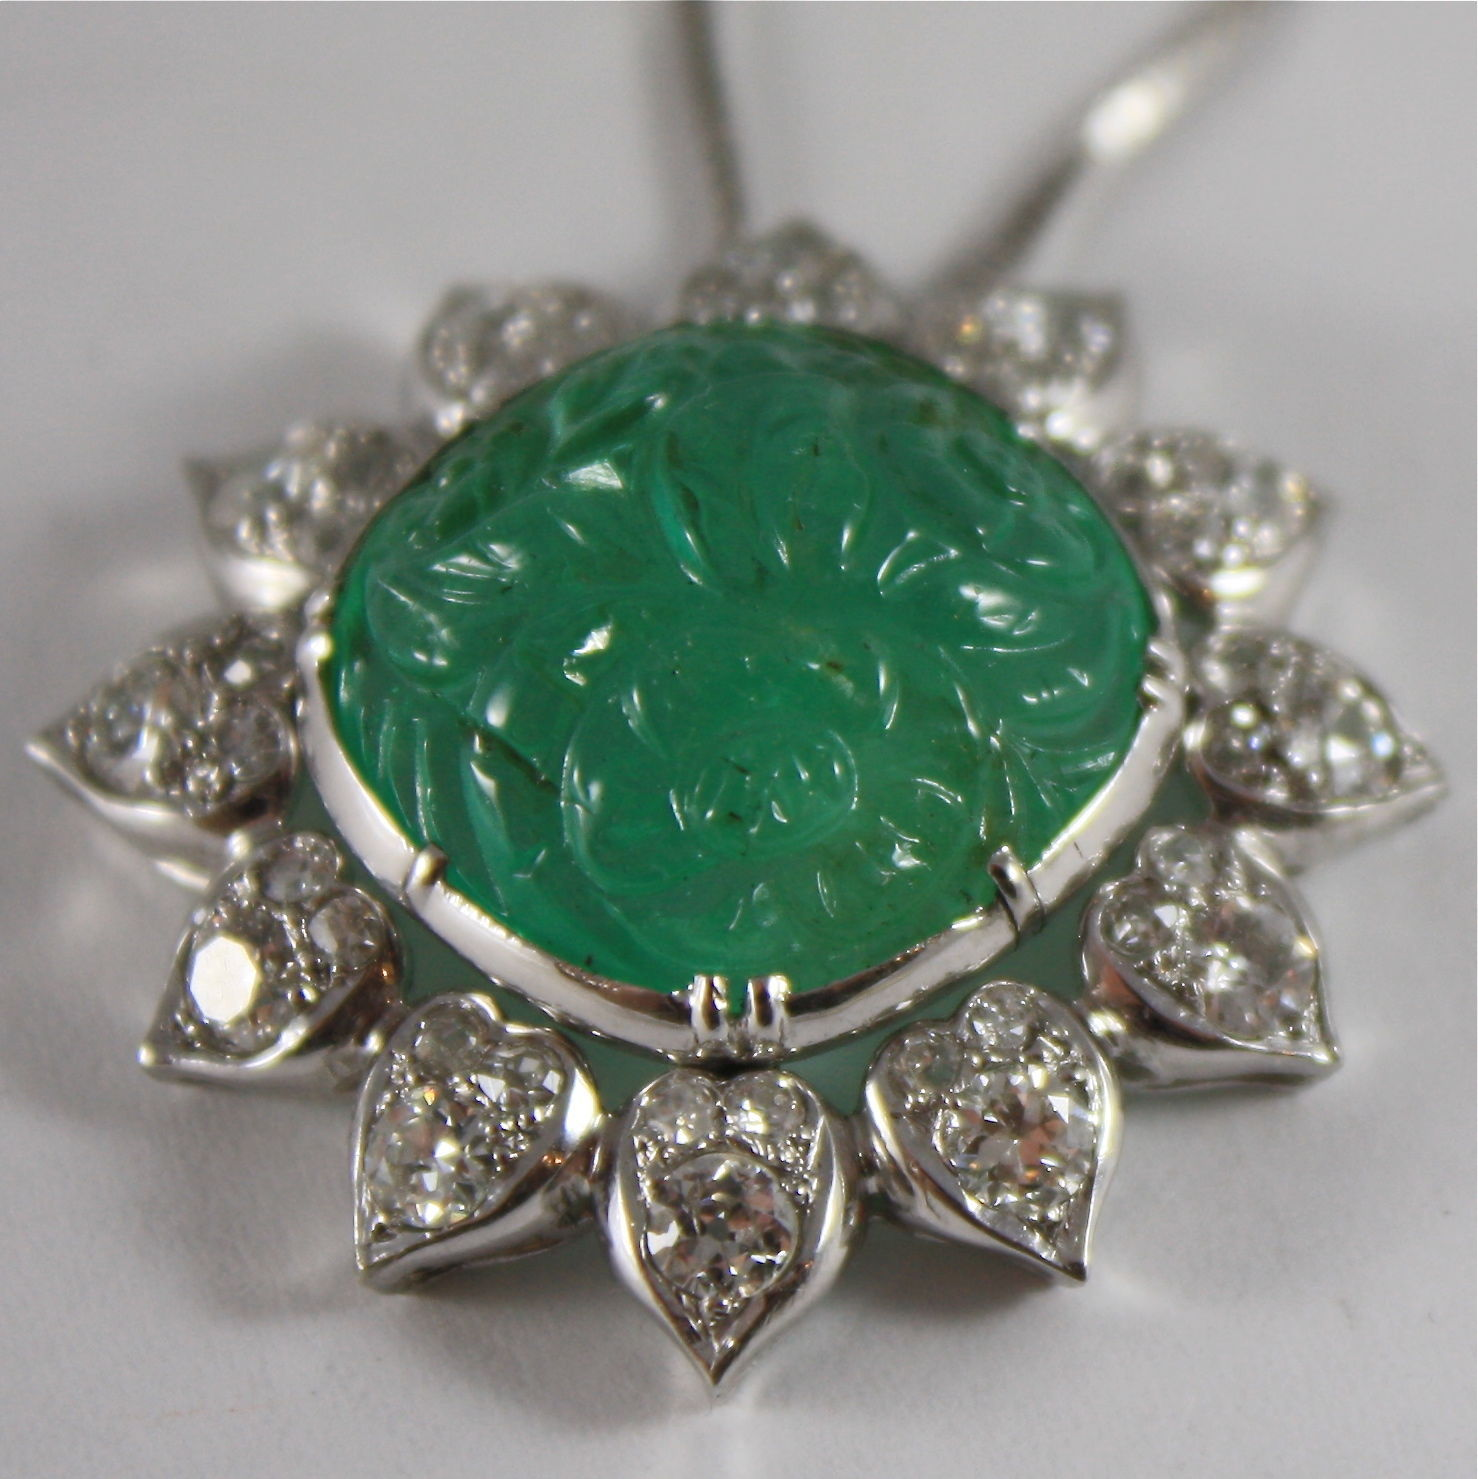 SOLID PLATINUM DIAMONDS CARVED EMERALD PENDANT NECKLACE ART DECO FLOWER 18K GOLD